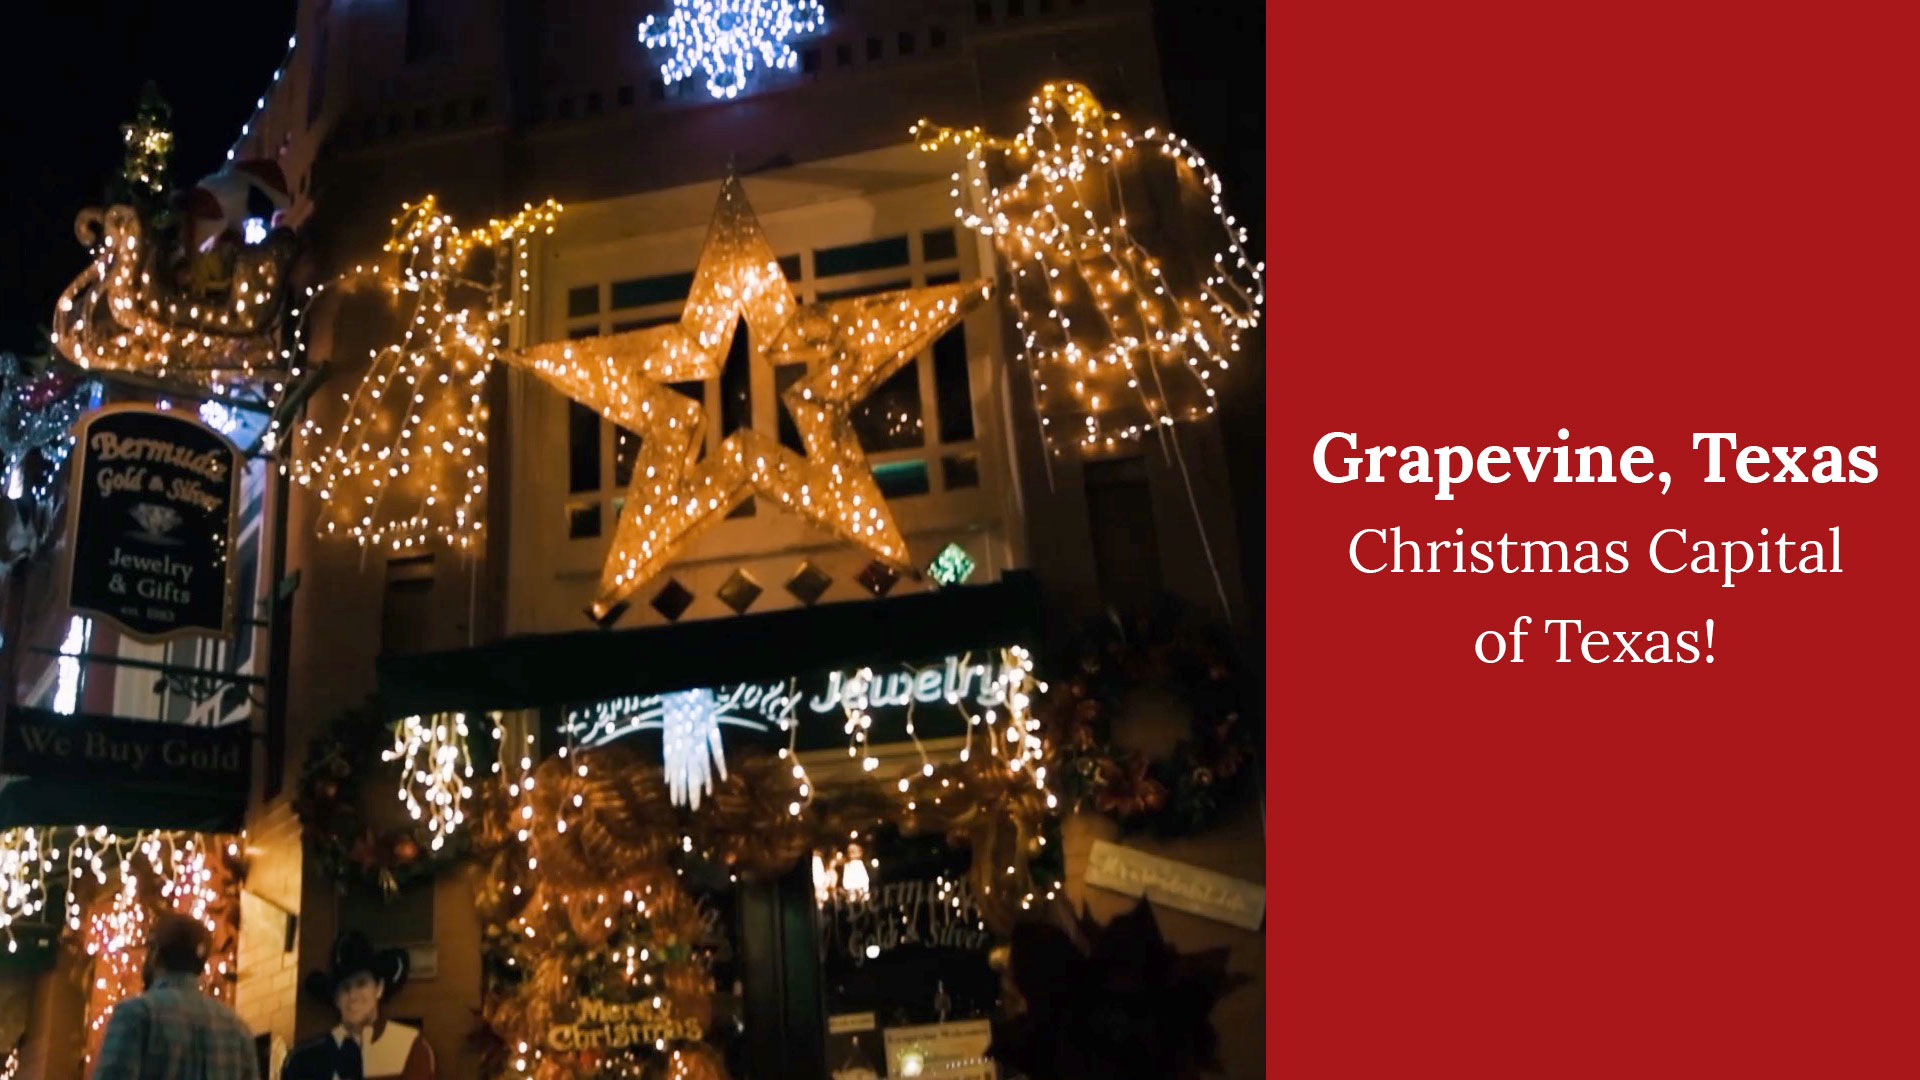 Grapevine, Texas – The Christmas Capital of Texas